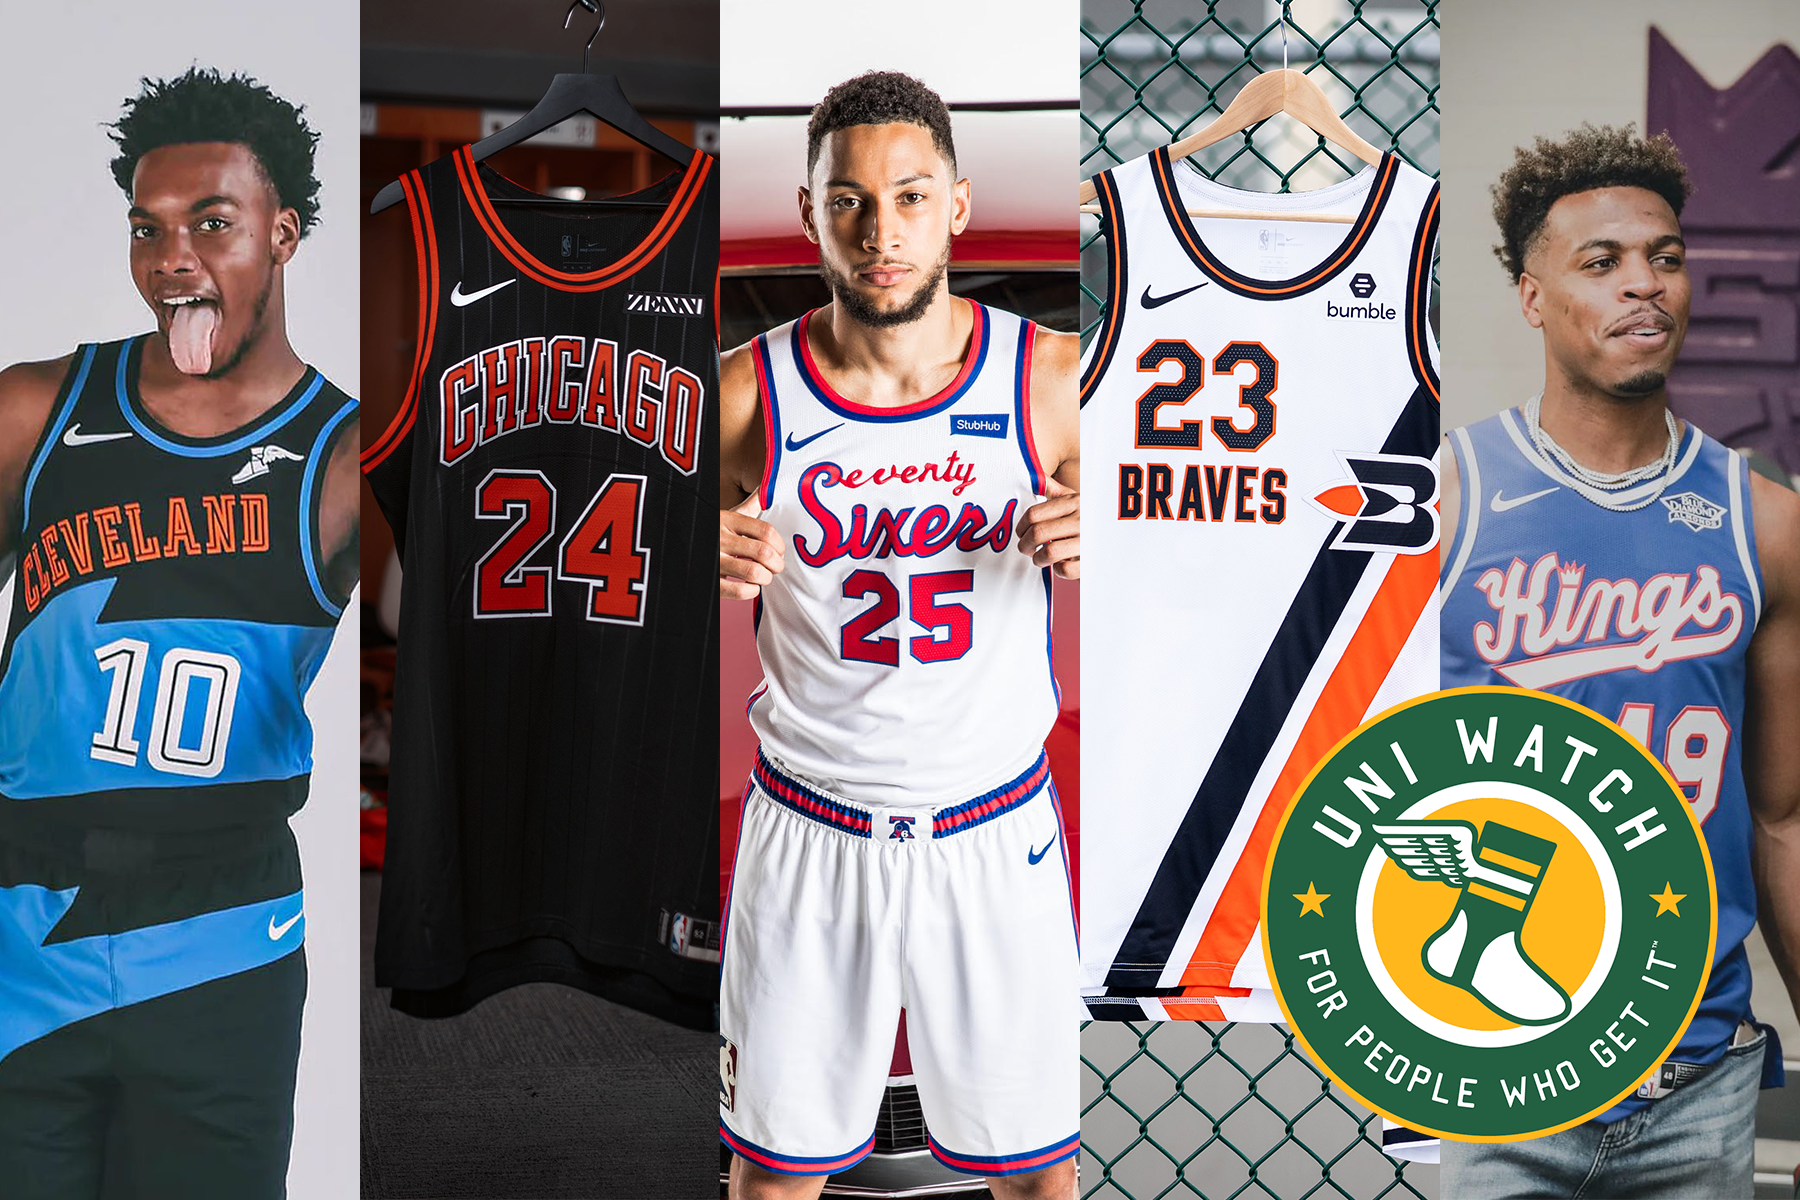 Christmas Jerseys Nba 2020 The 2019 Uni Watch NBA Season Preview   InsideHook